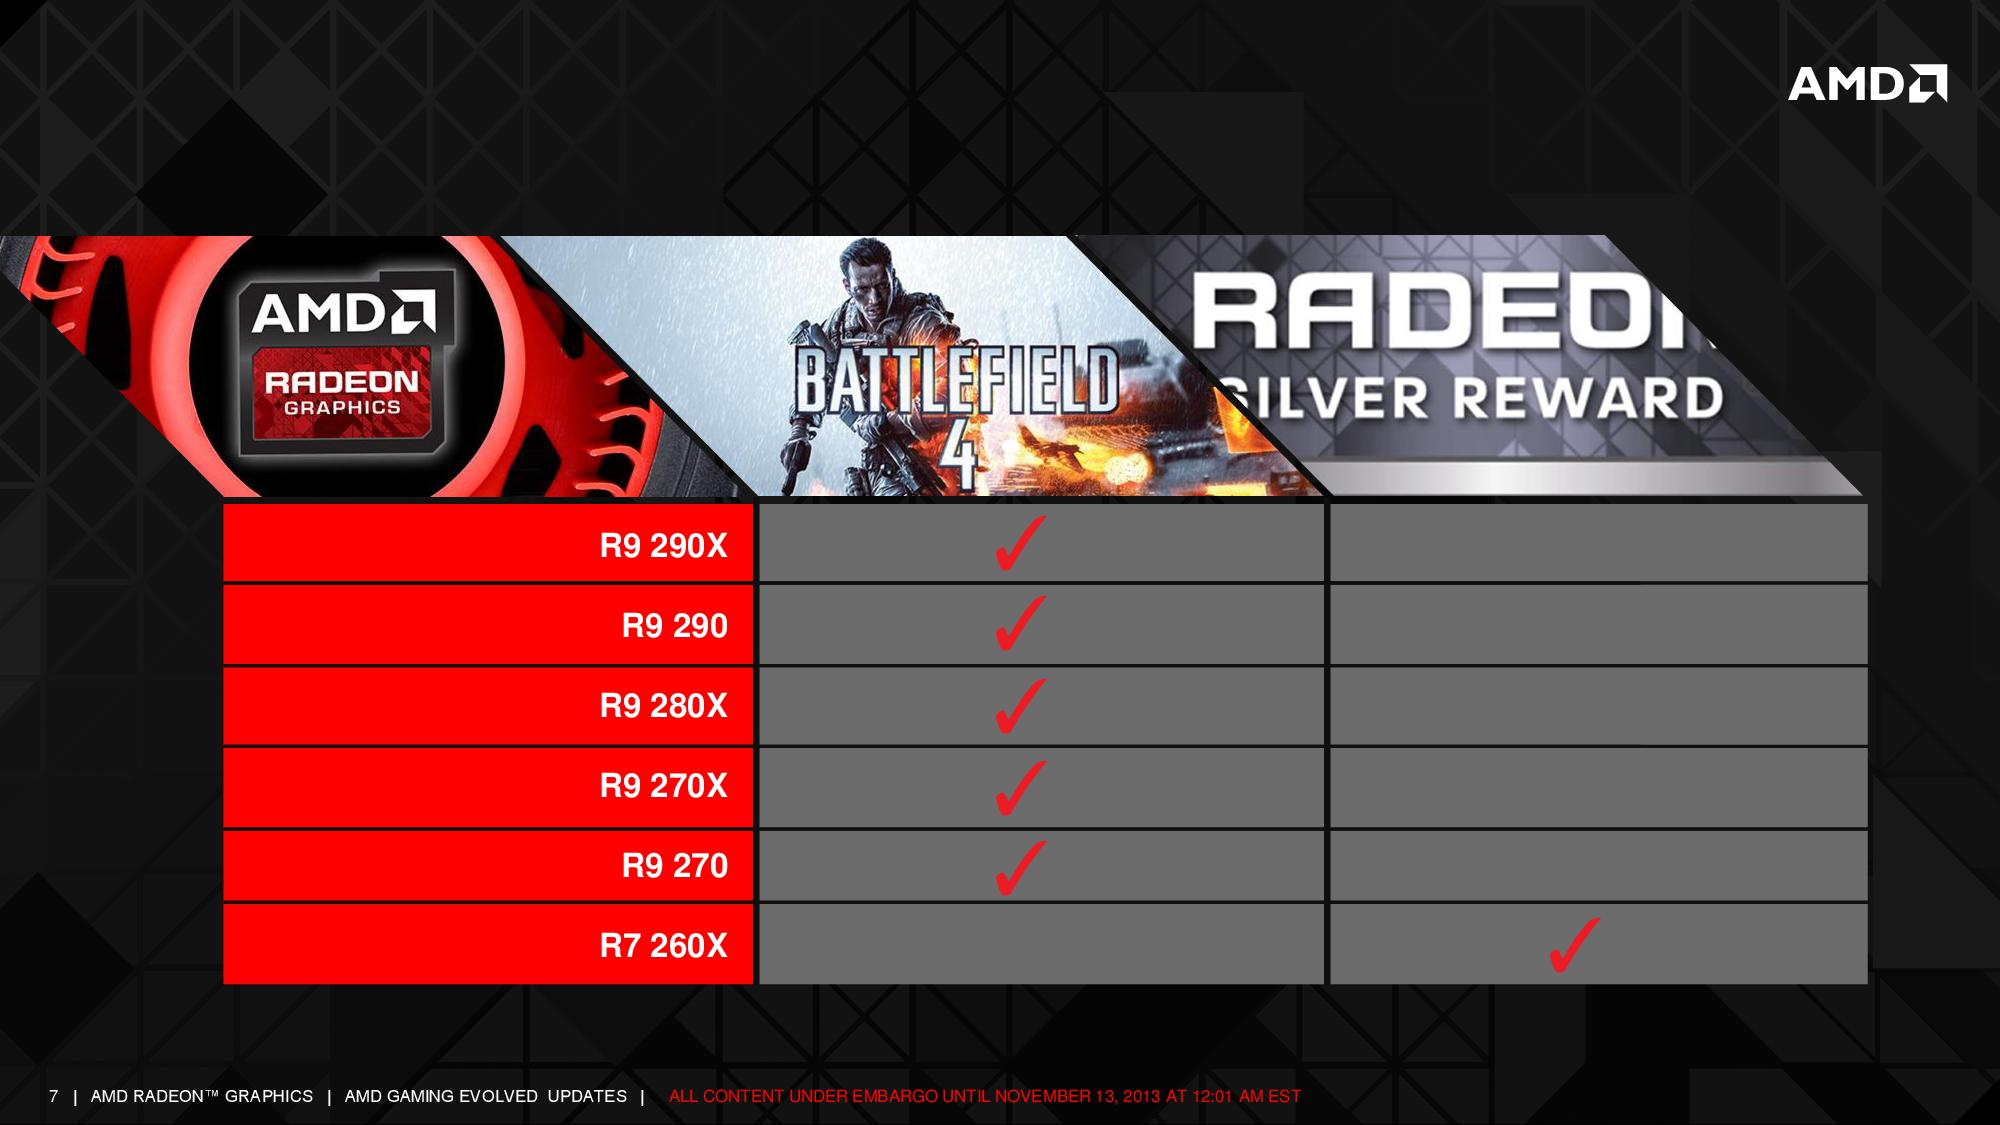 4Q13 AMD Radeon Game Bundles FINAL-007